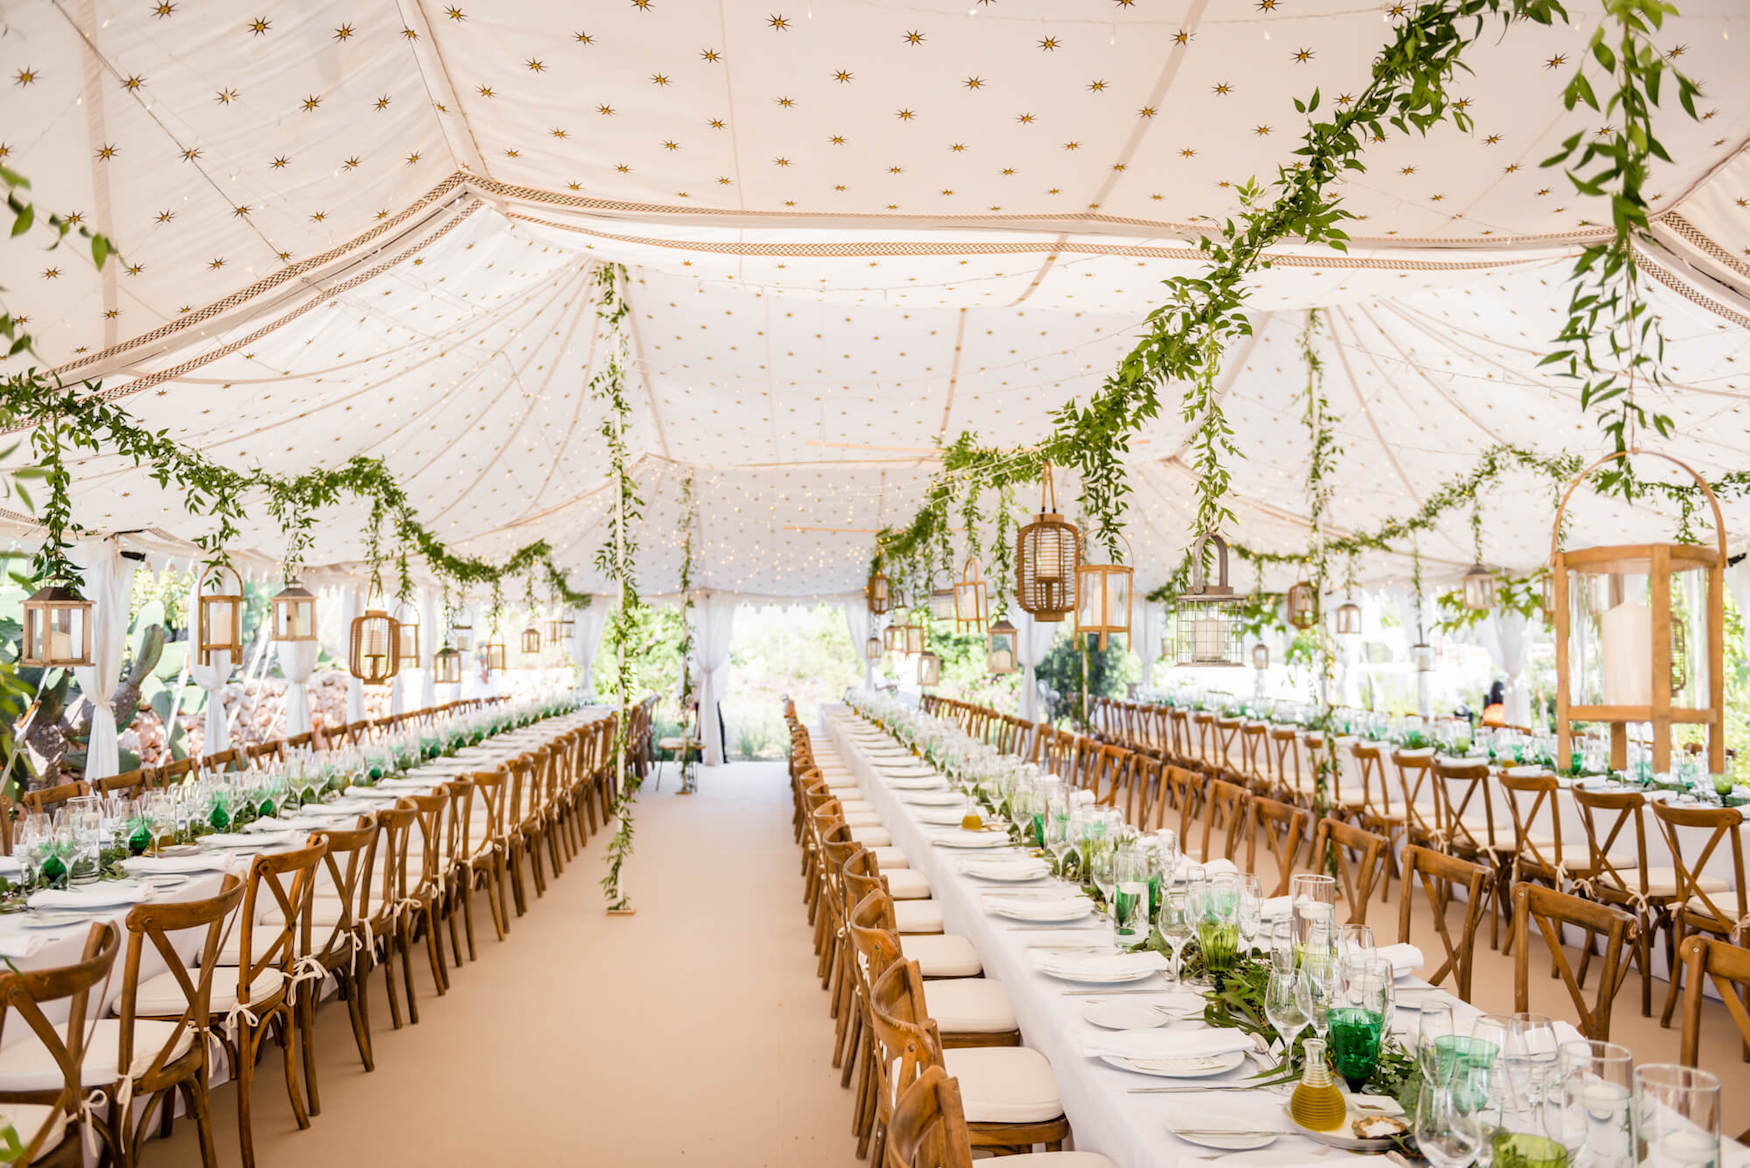 long tables latern leaf decorations marrocan wedding tent olive tree leaves